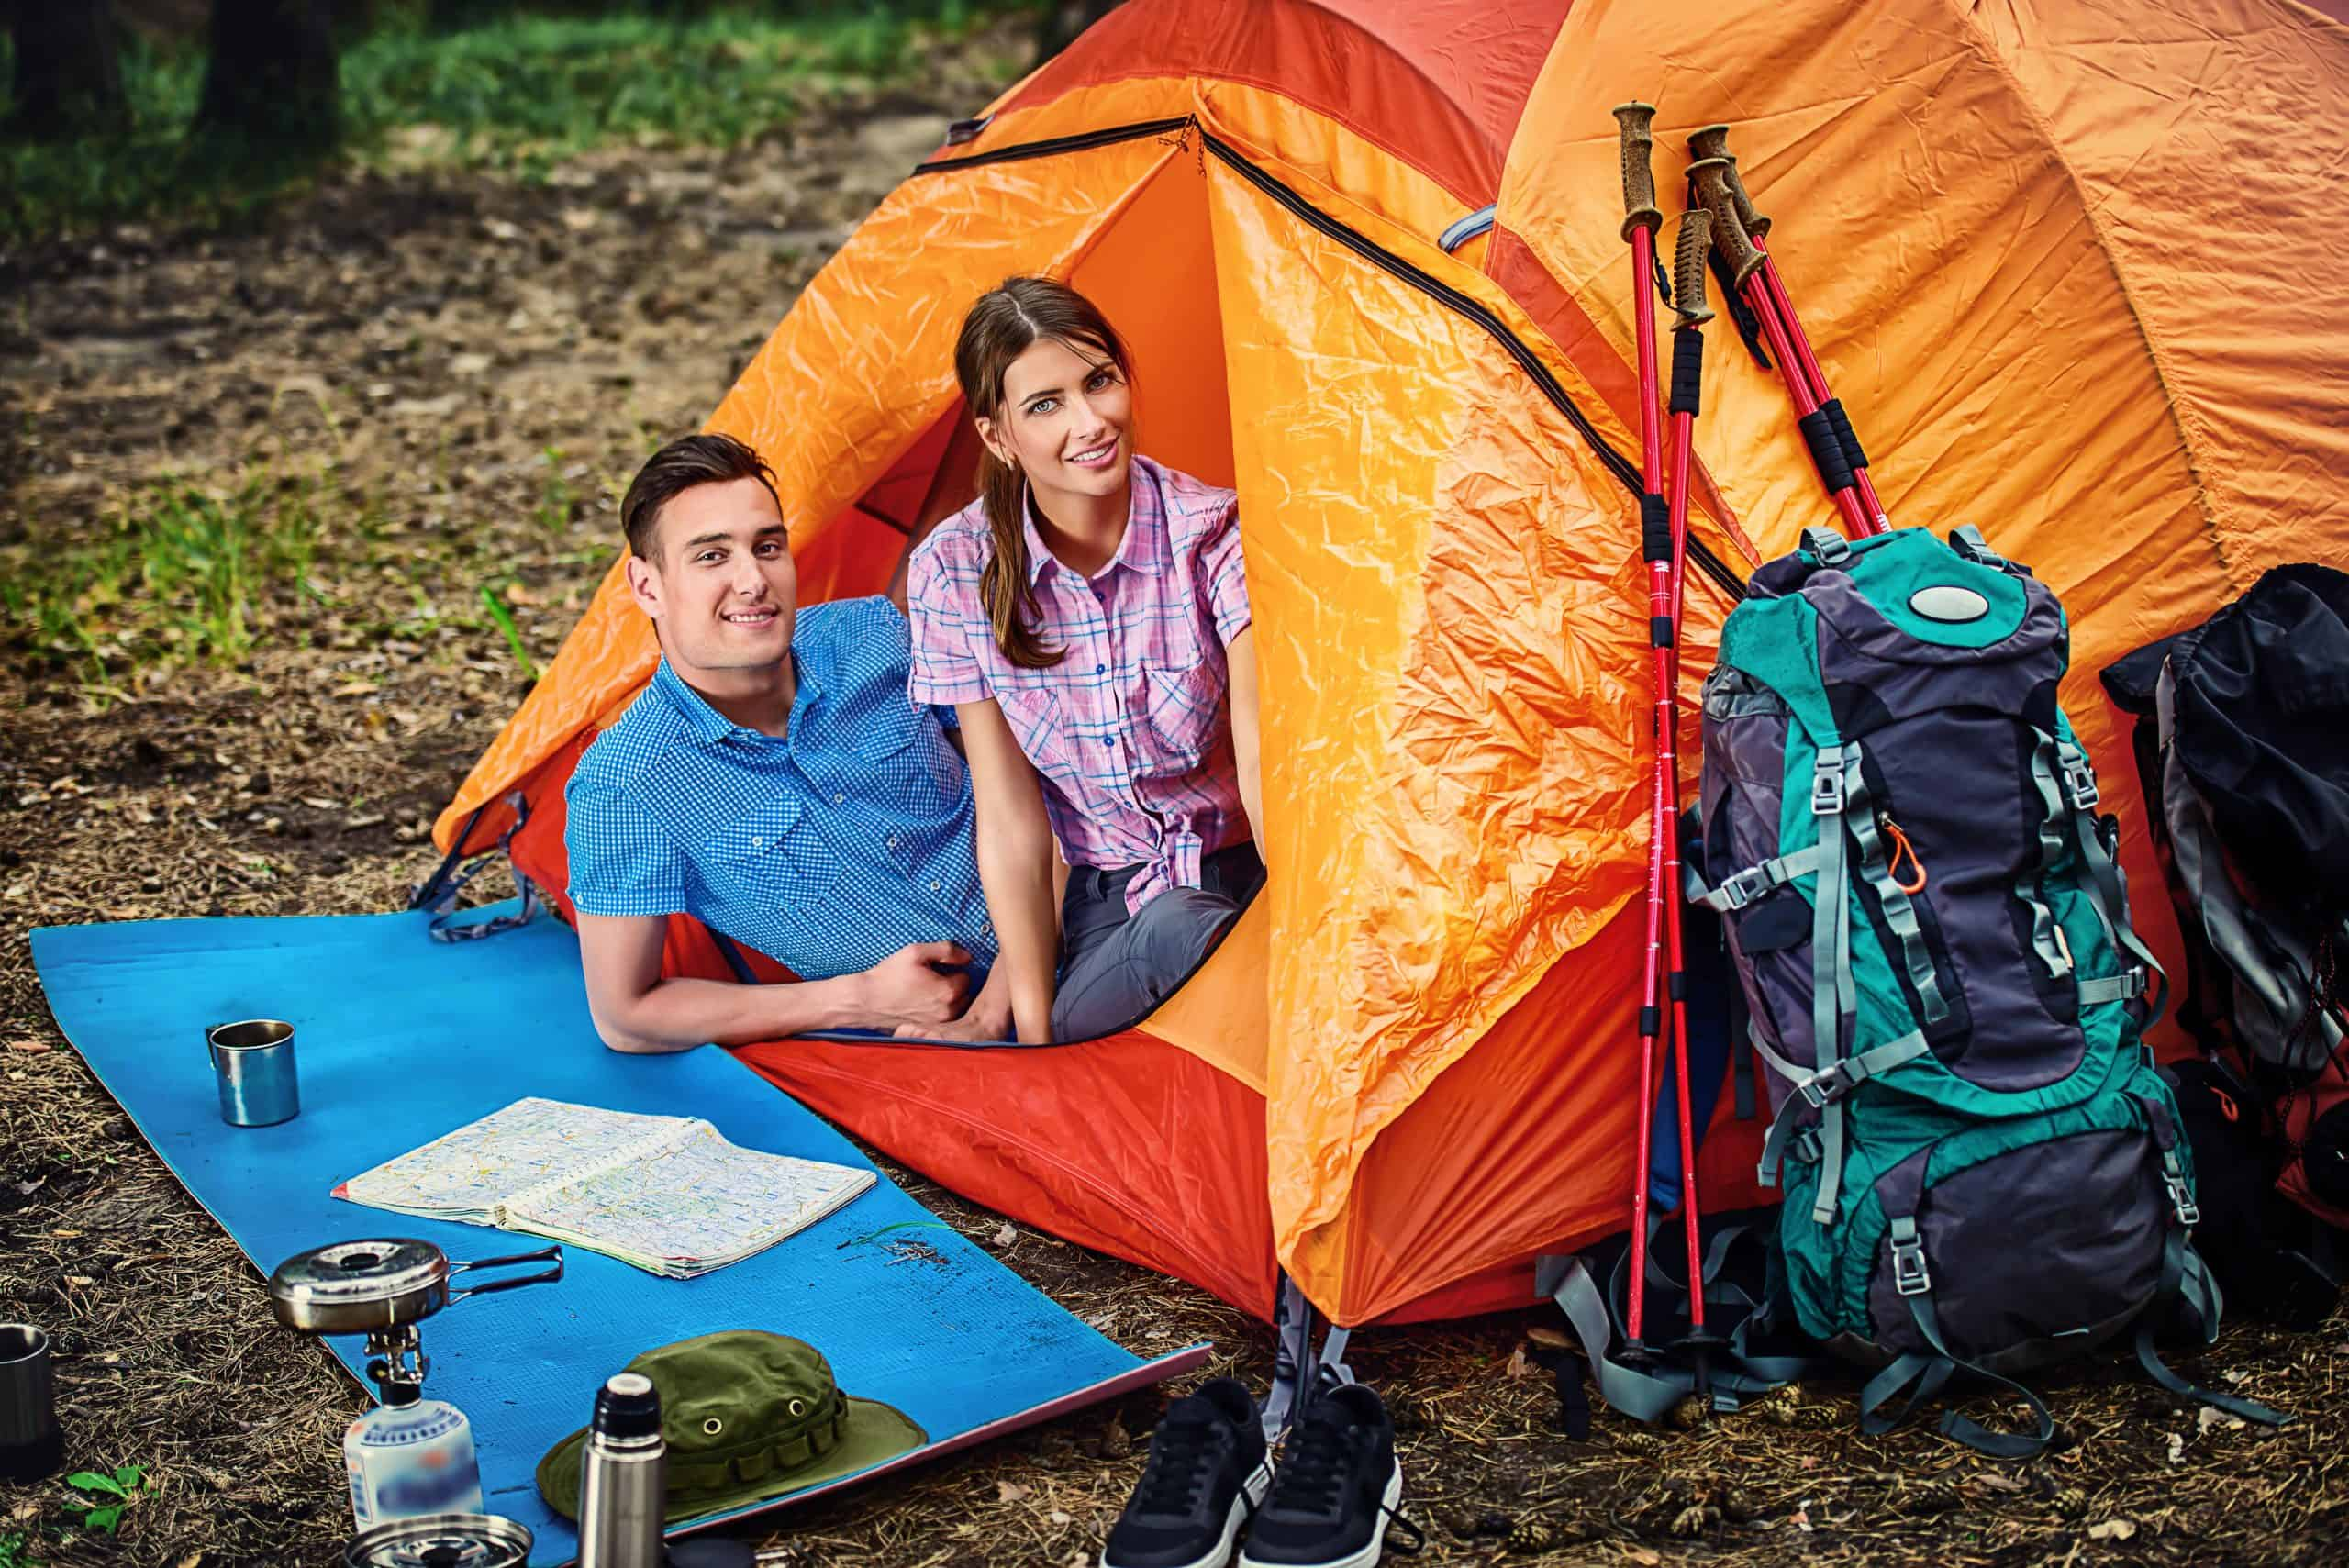 Used outdoor gear - Happy man-woman couple in an orange tent surrounding by backpacks and hiking poles